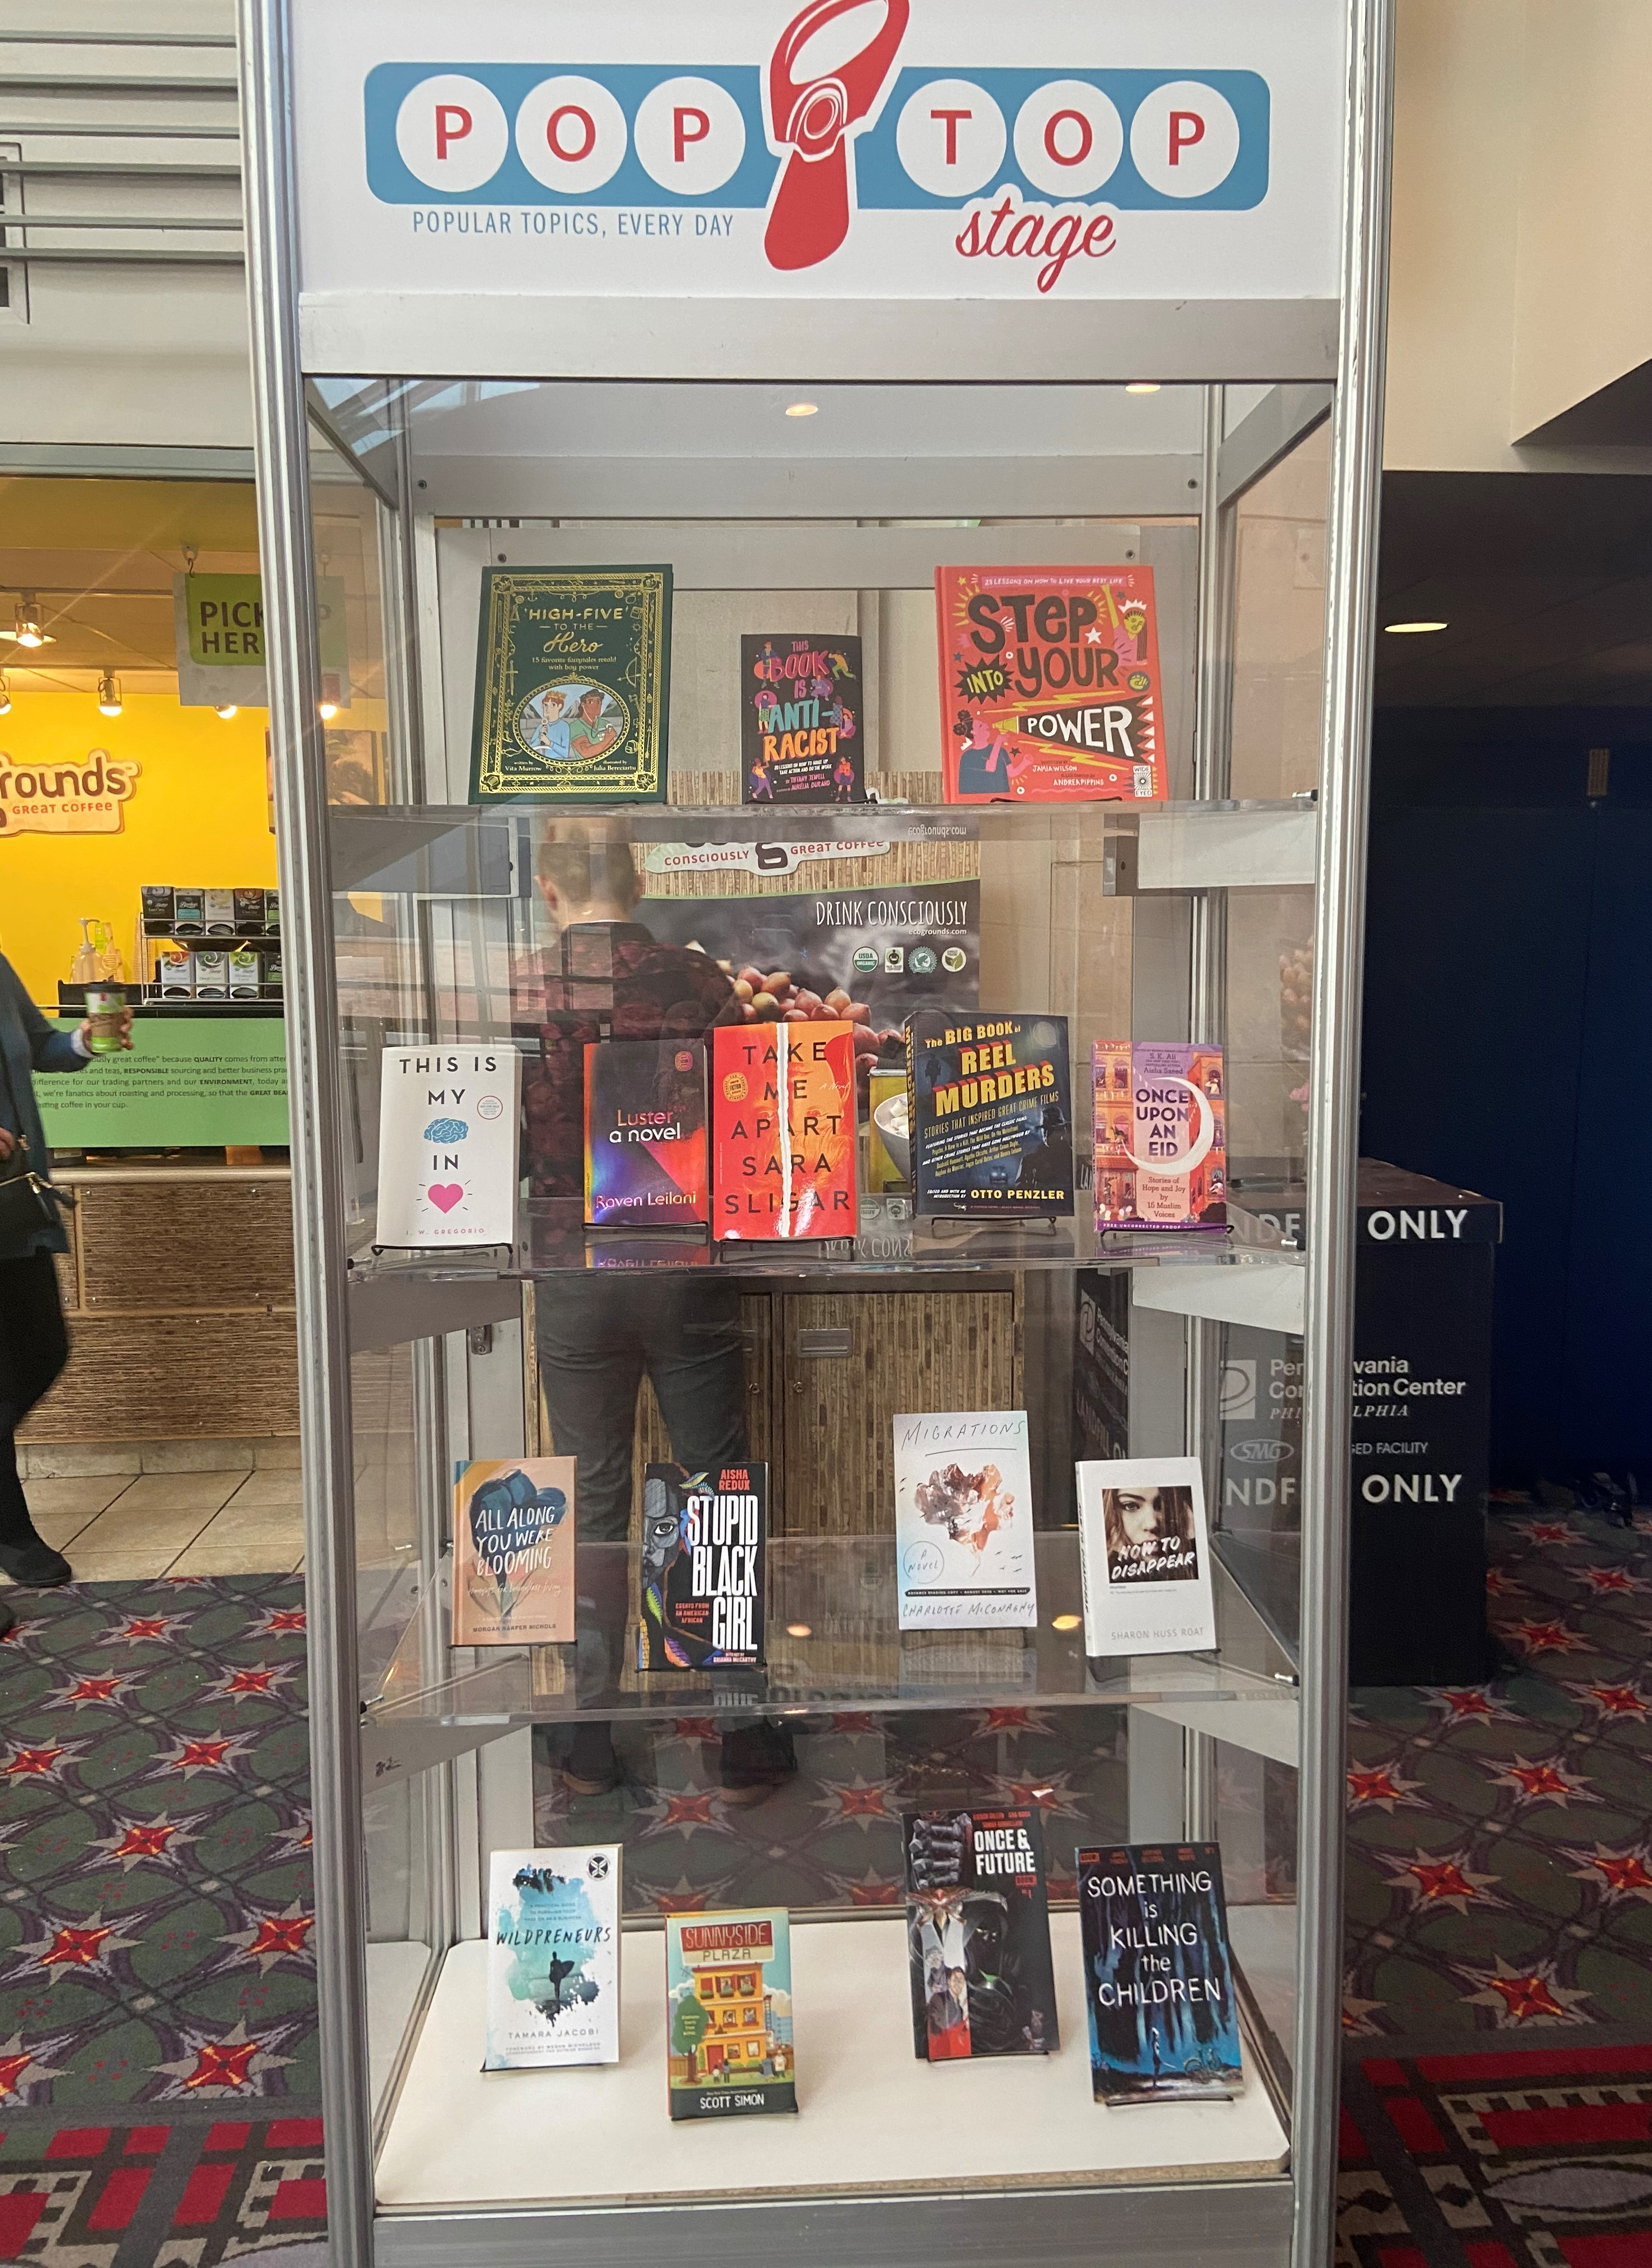 A display case with books on each shelf